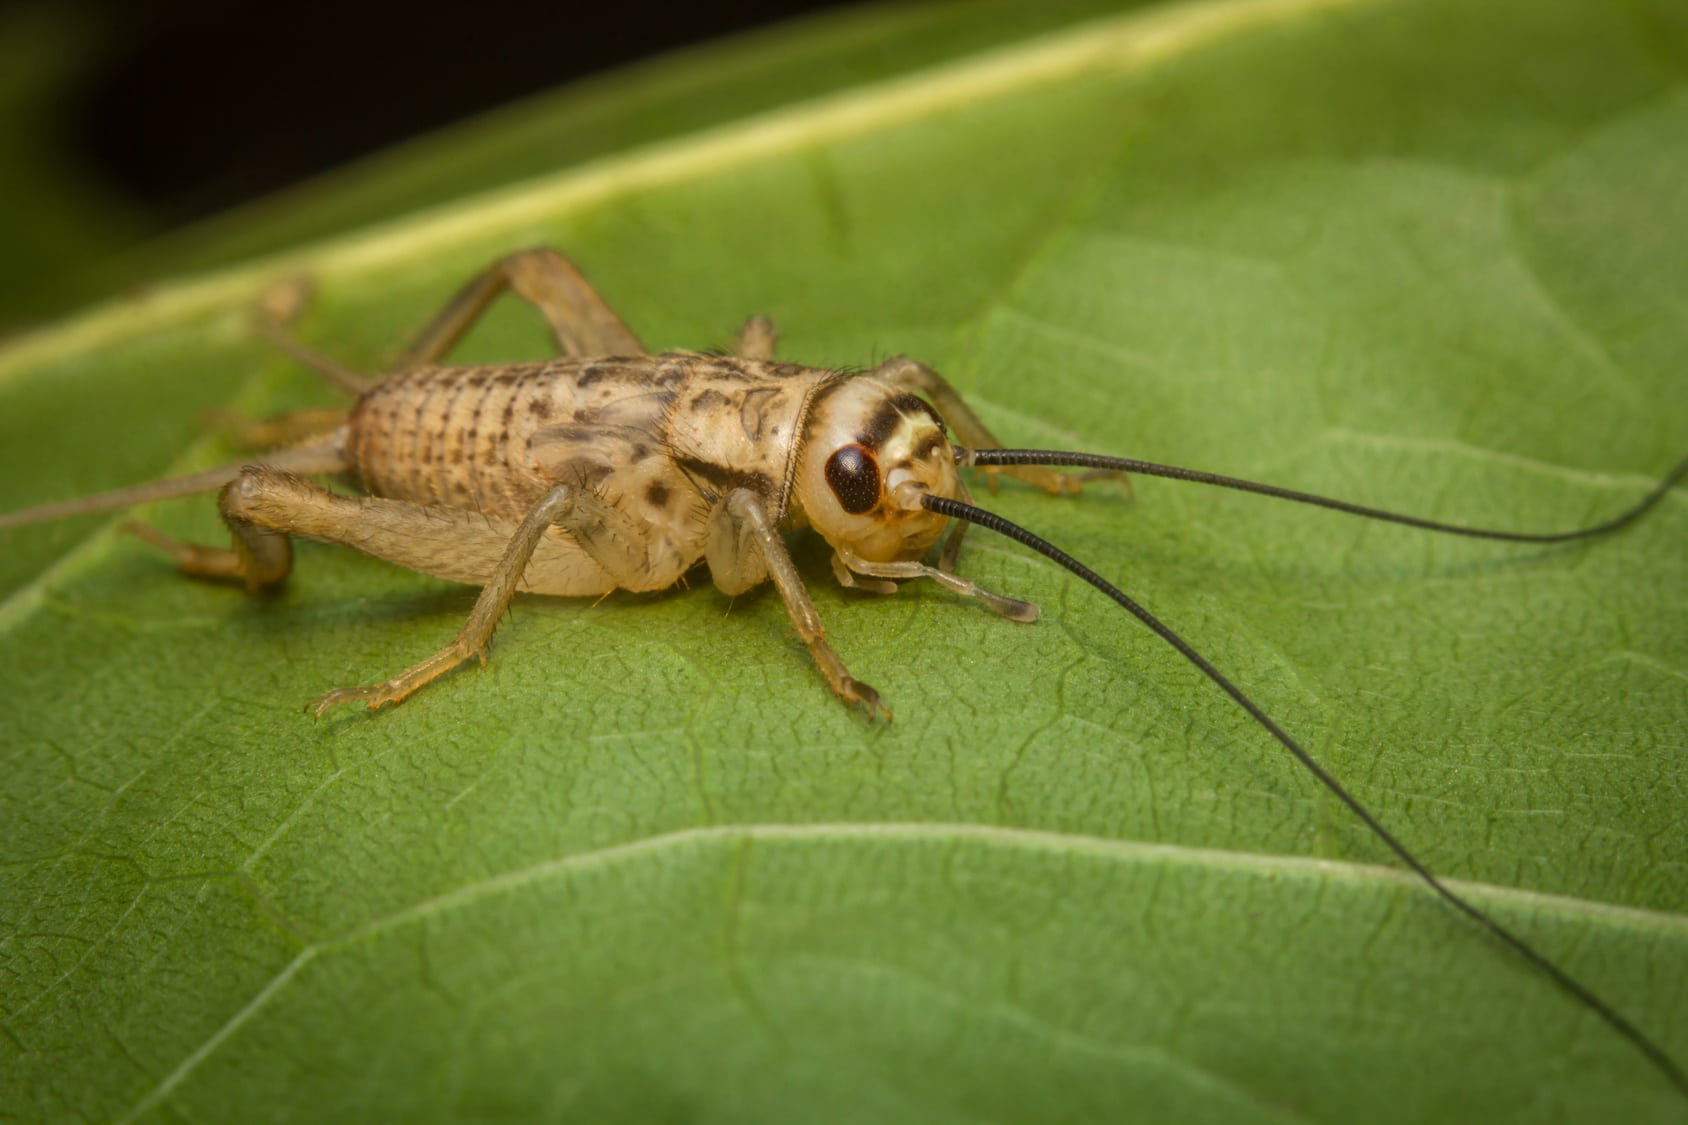 What Sound Does a Cricket Make?